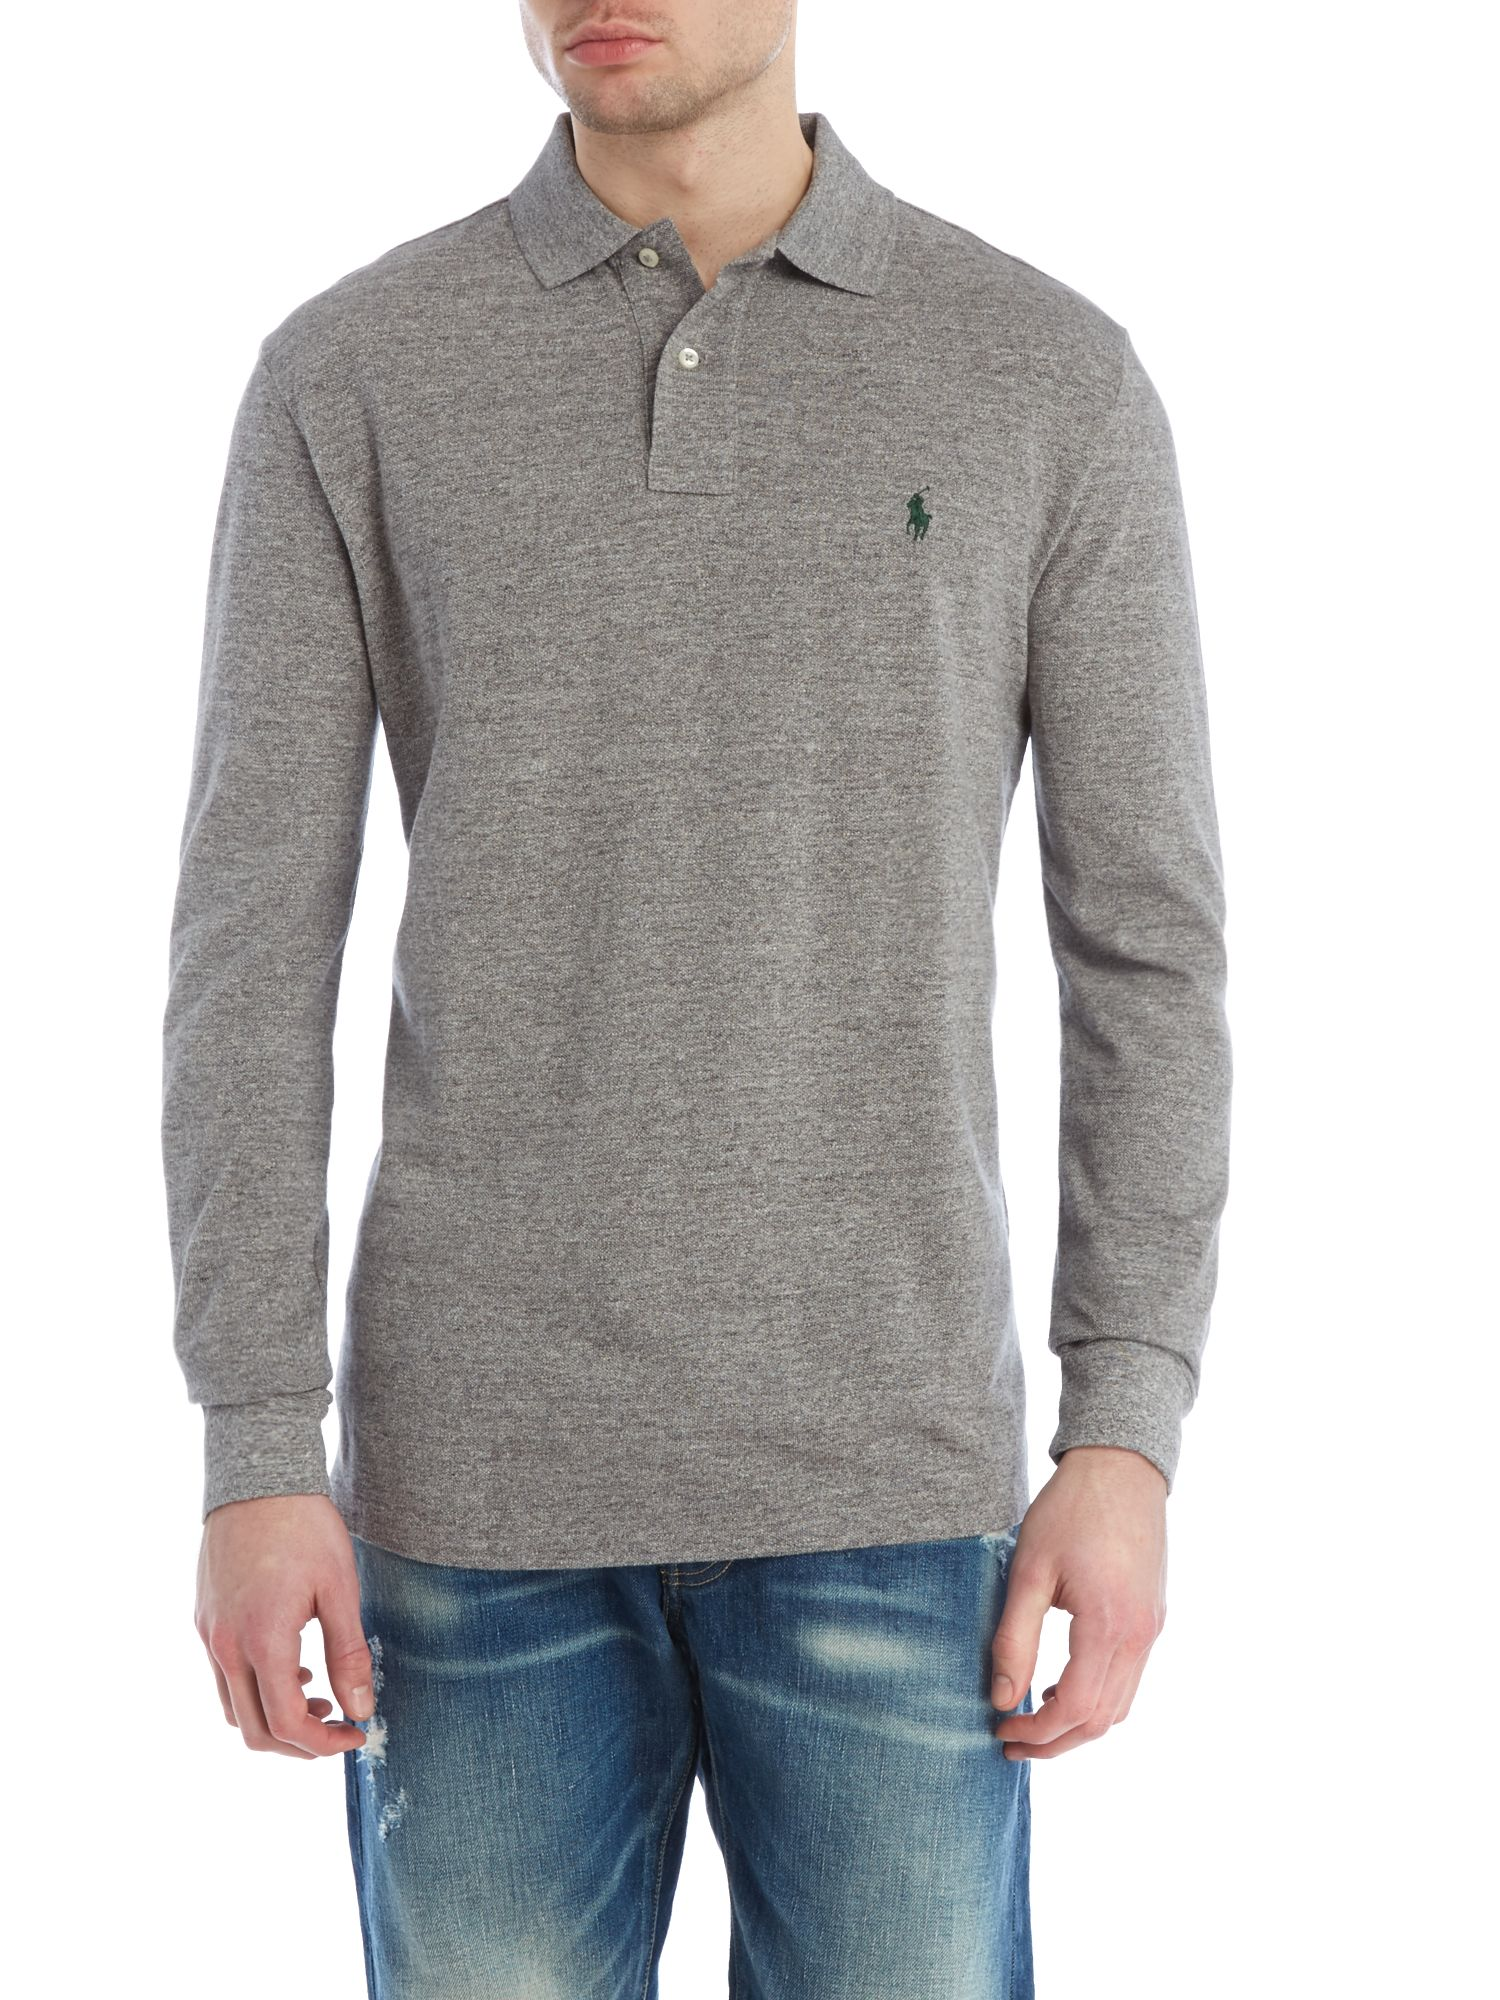 Lyst polo ralph lauren long sleeve polo shirt in gray for Grey long sleeve shirts